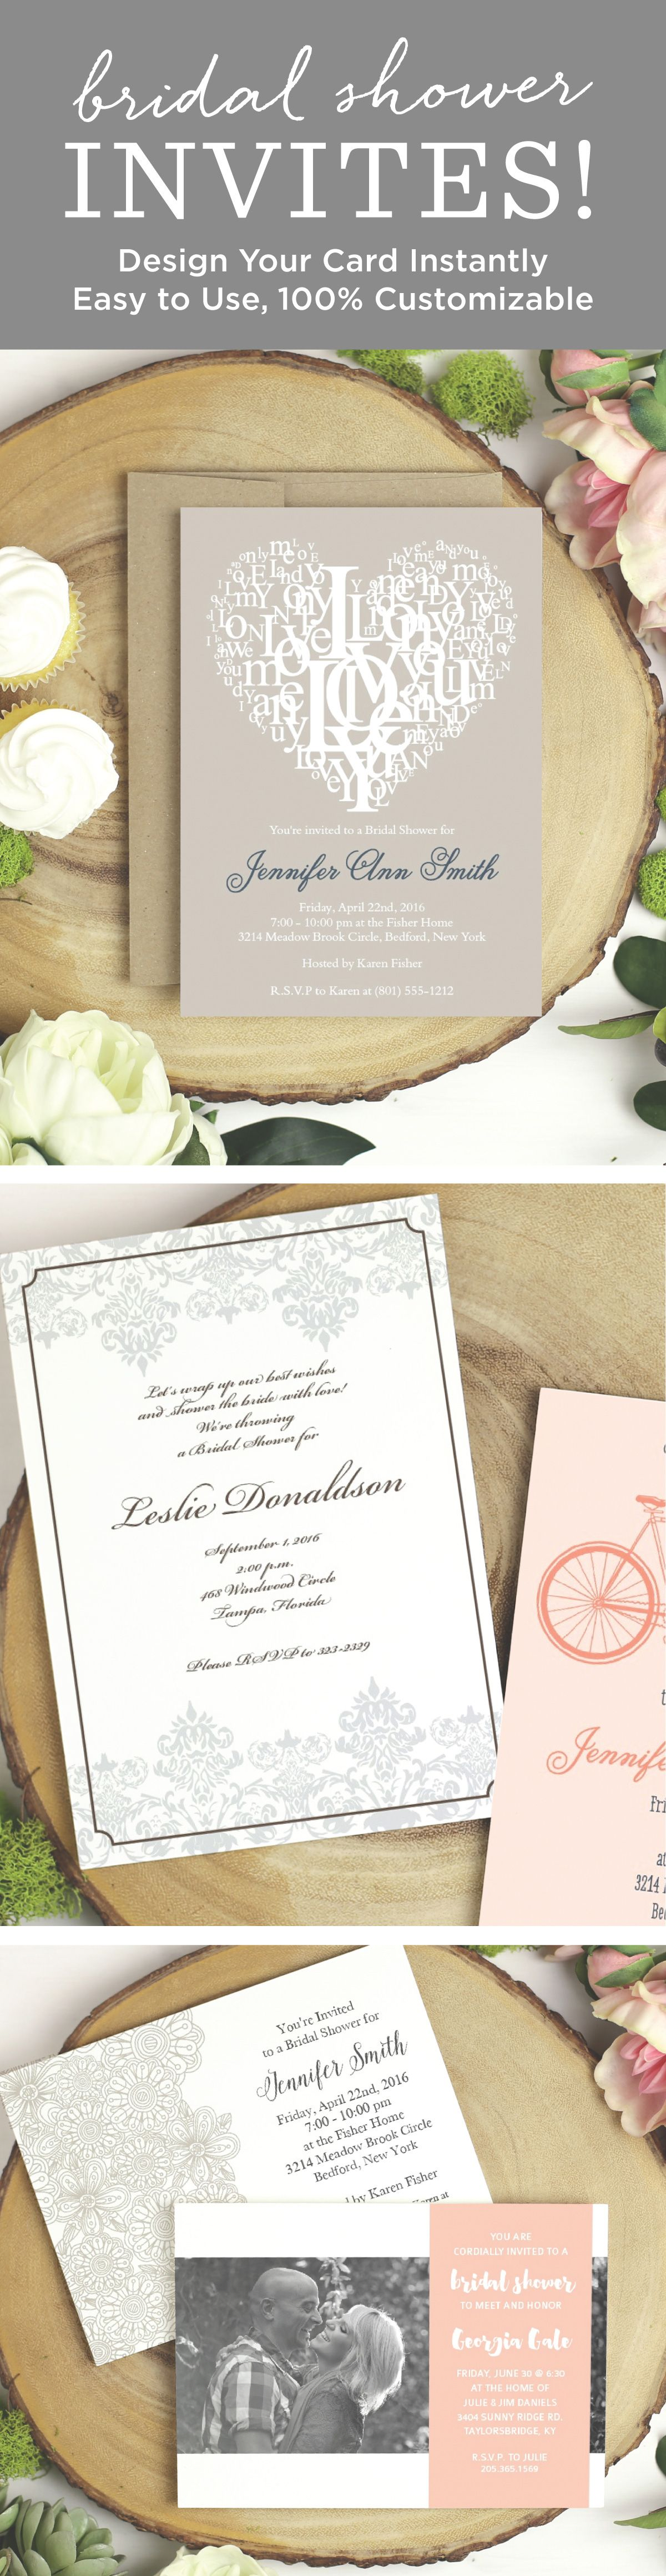 bridal shower invitations registry etiquette%0A Design your perfect brial shower card instantly online with realtime  previews of every change  Bridal Shower CardsBridal Shower  InvitationsWedding